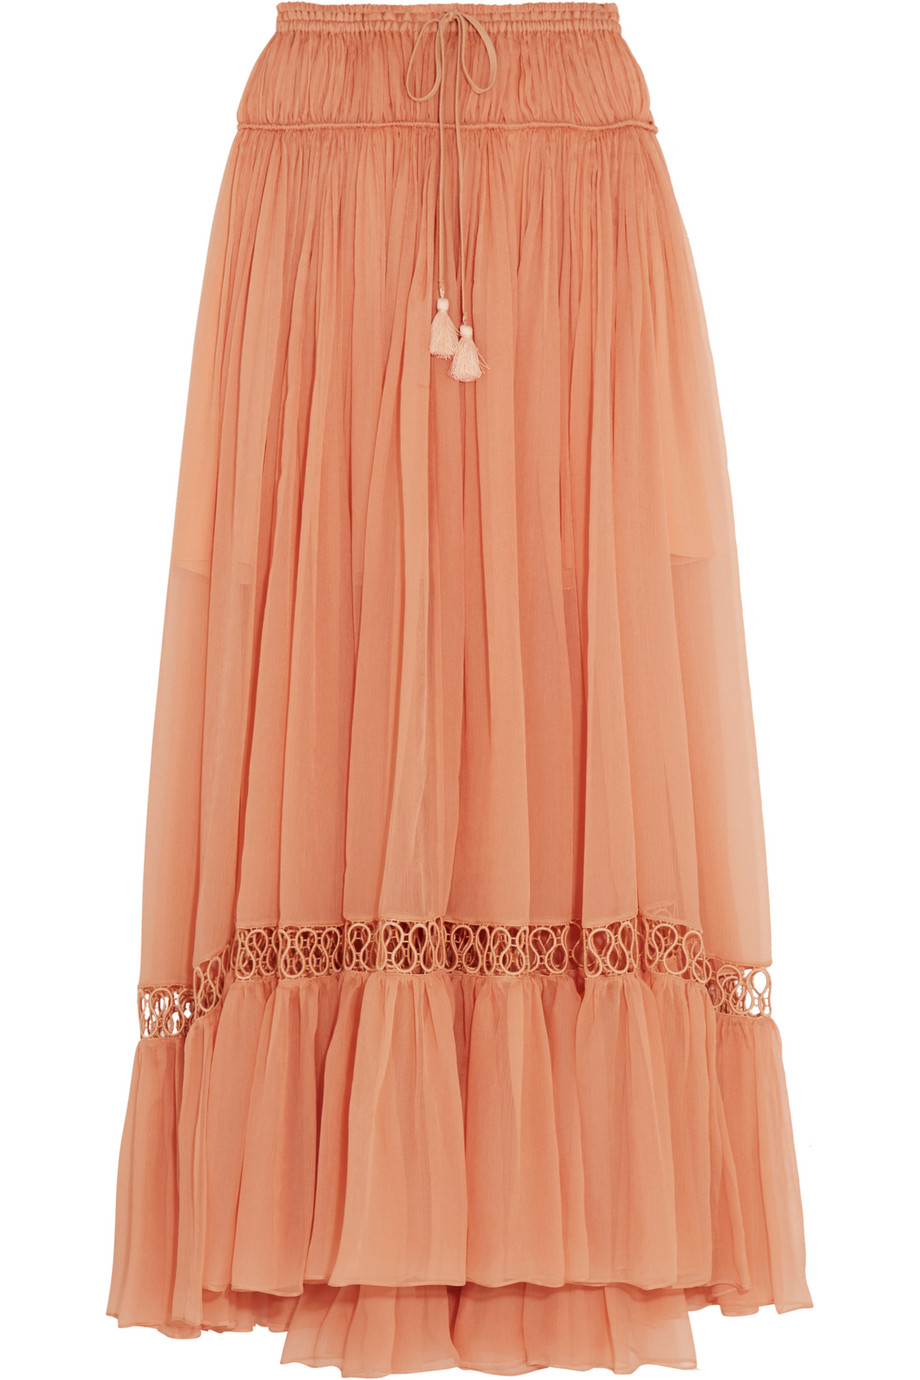 Chloé Guipure Lace-Trimmed Silk-Crepon Maxi Skirt, Coral, Women's, Size: 36